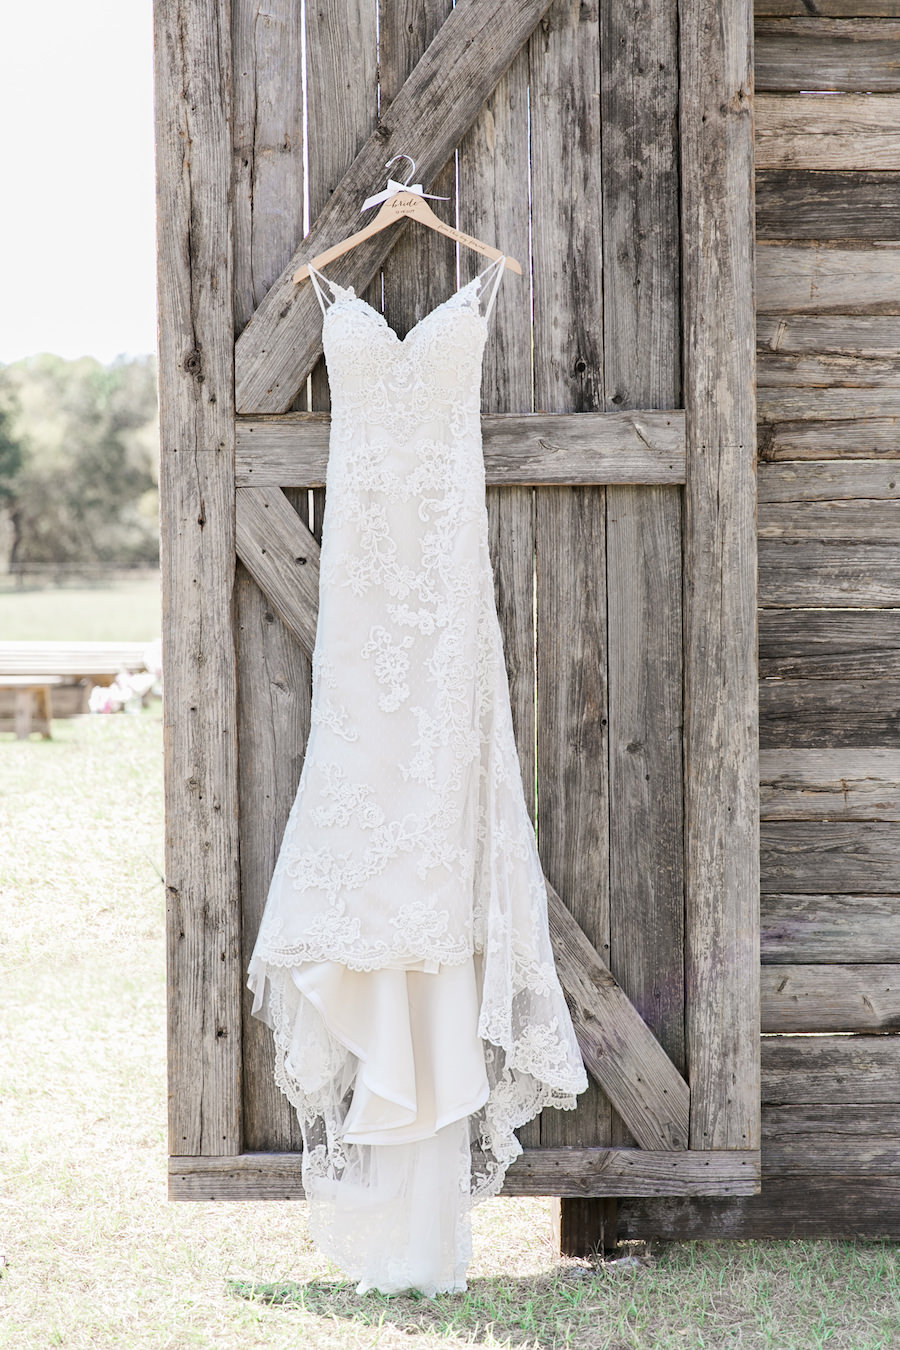 Lace Open Back Wedding Dress with Spaghetti Straps on Barn Door   Rustic, Country Wedding Inspiration